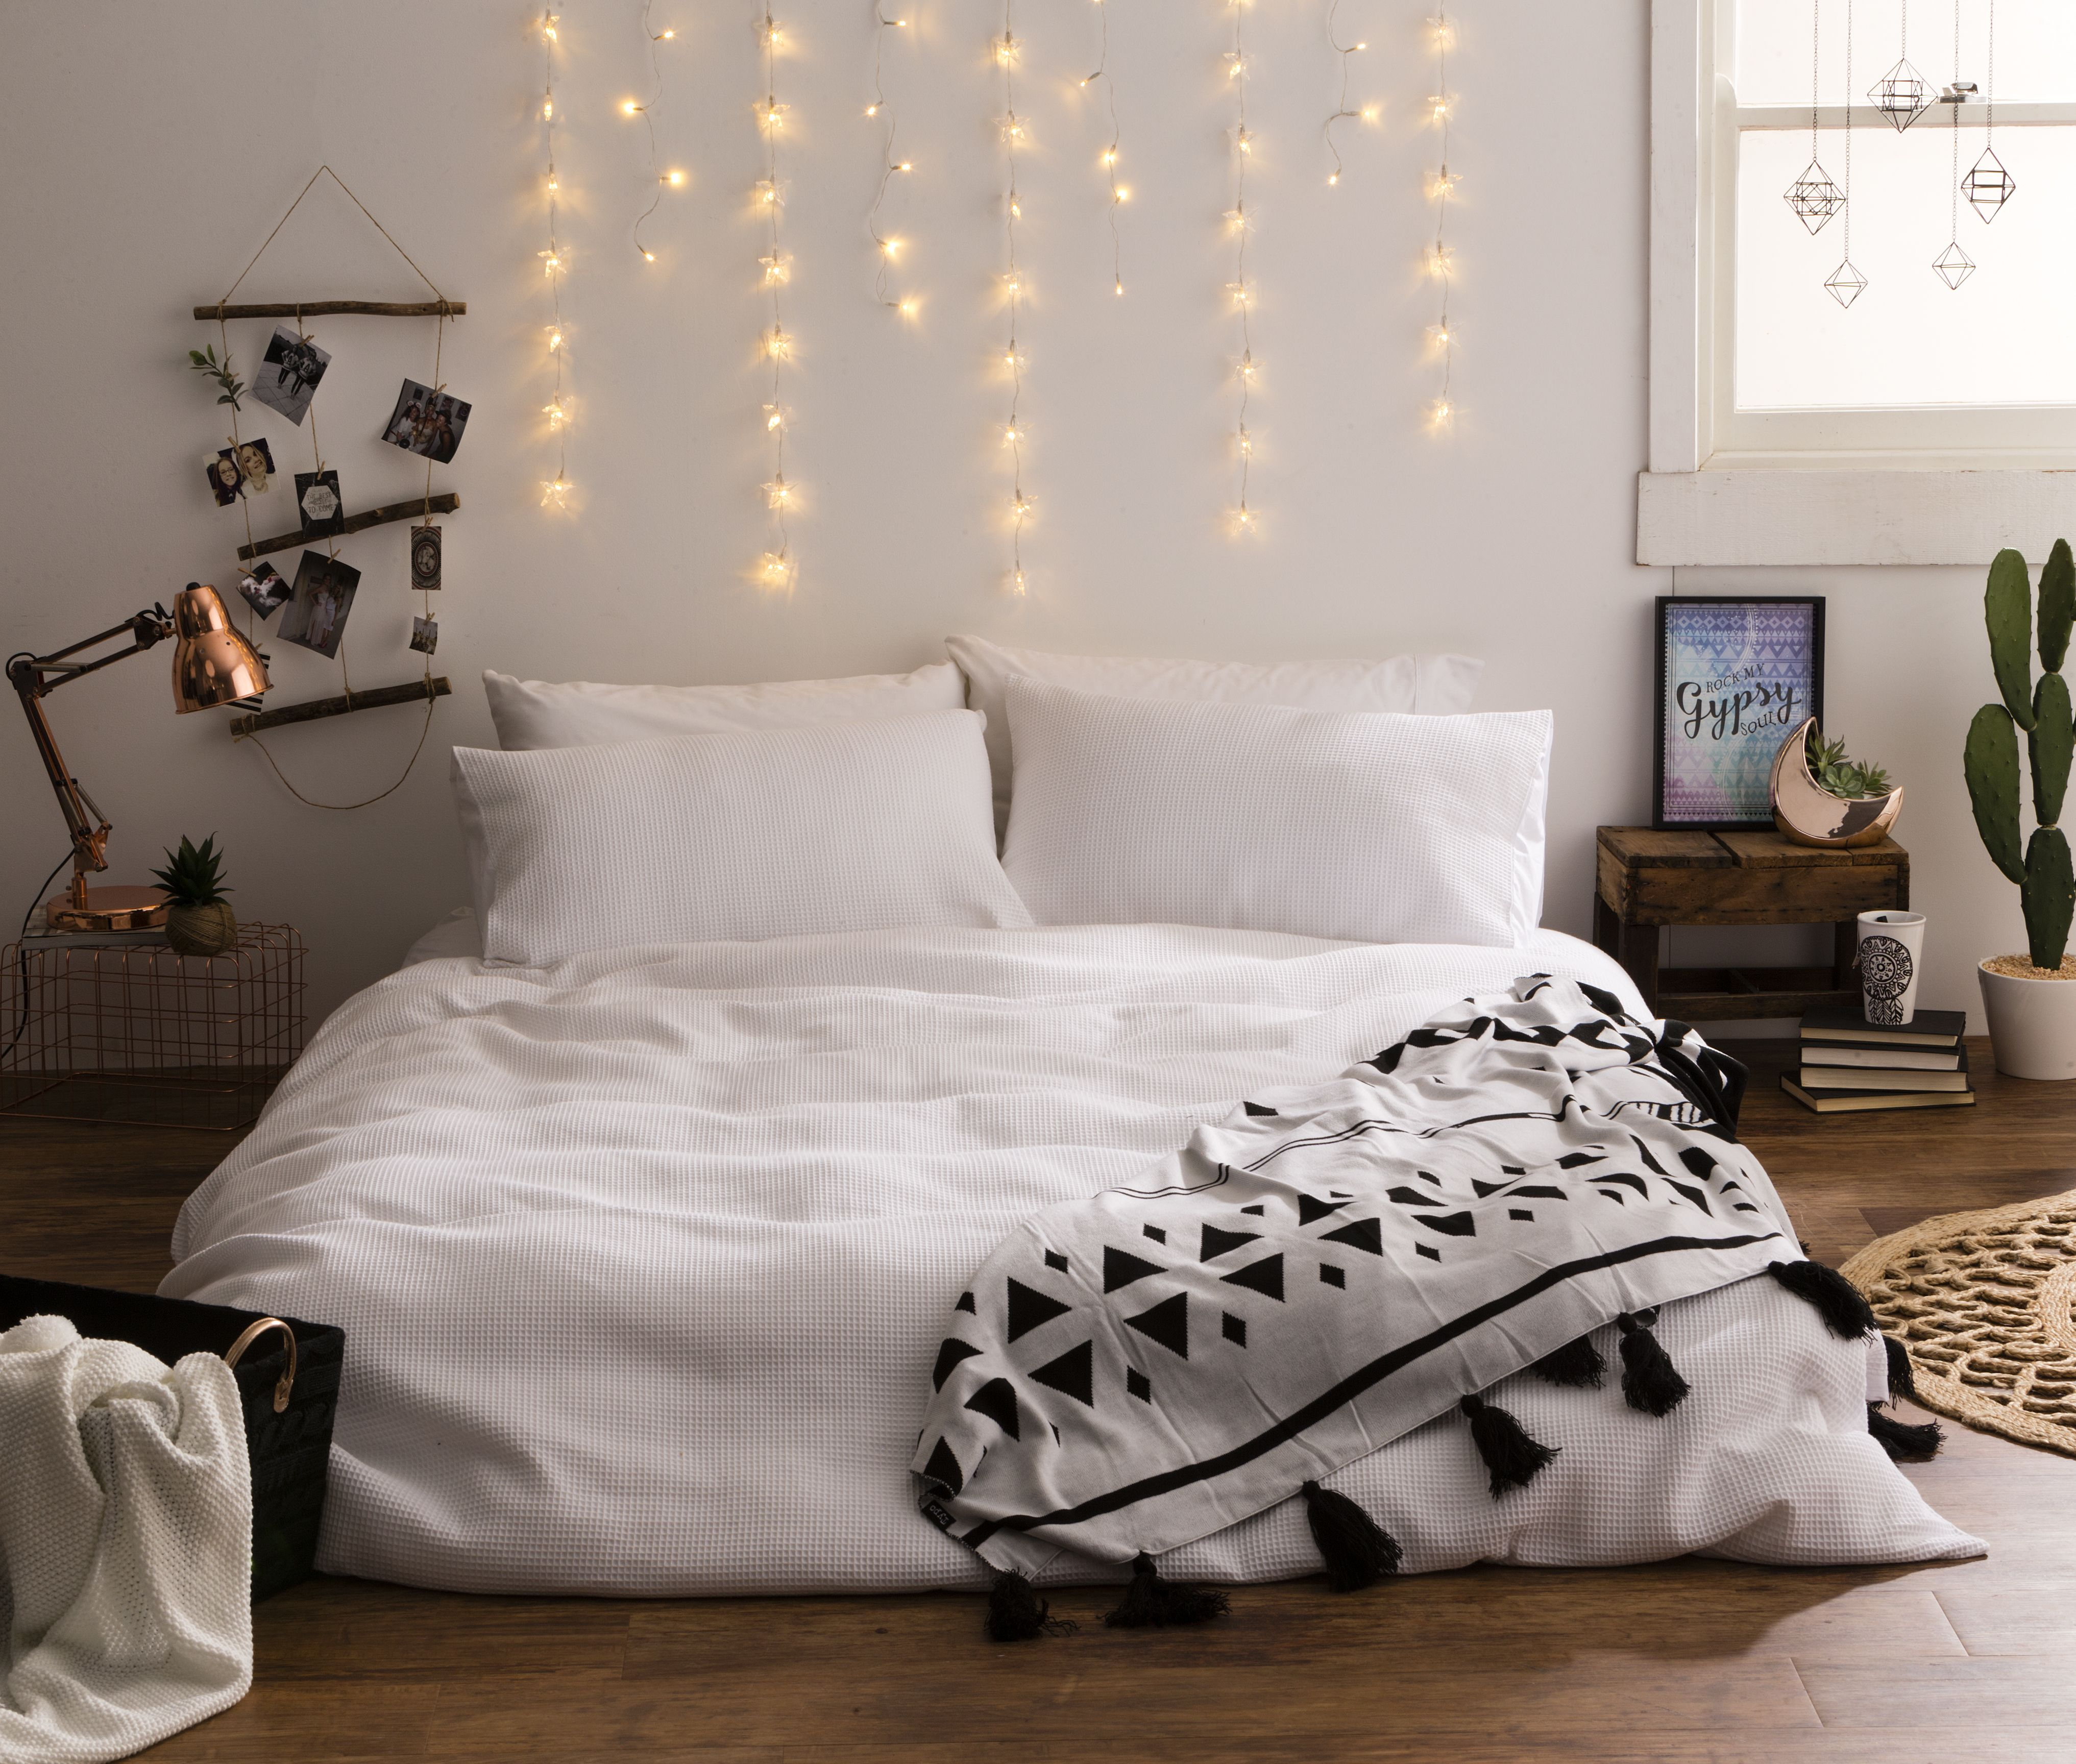 Go back to the bedroom with the cozy warm Typo curtain lights ...